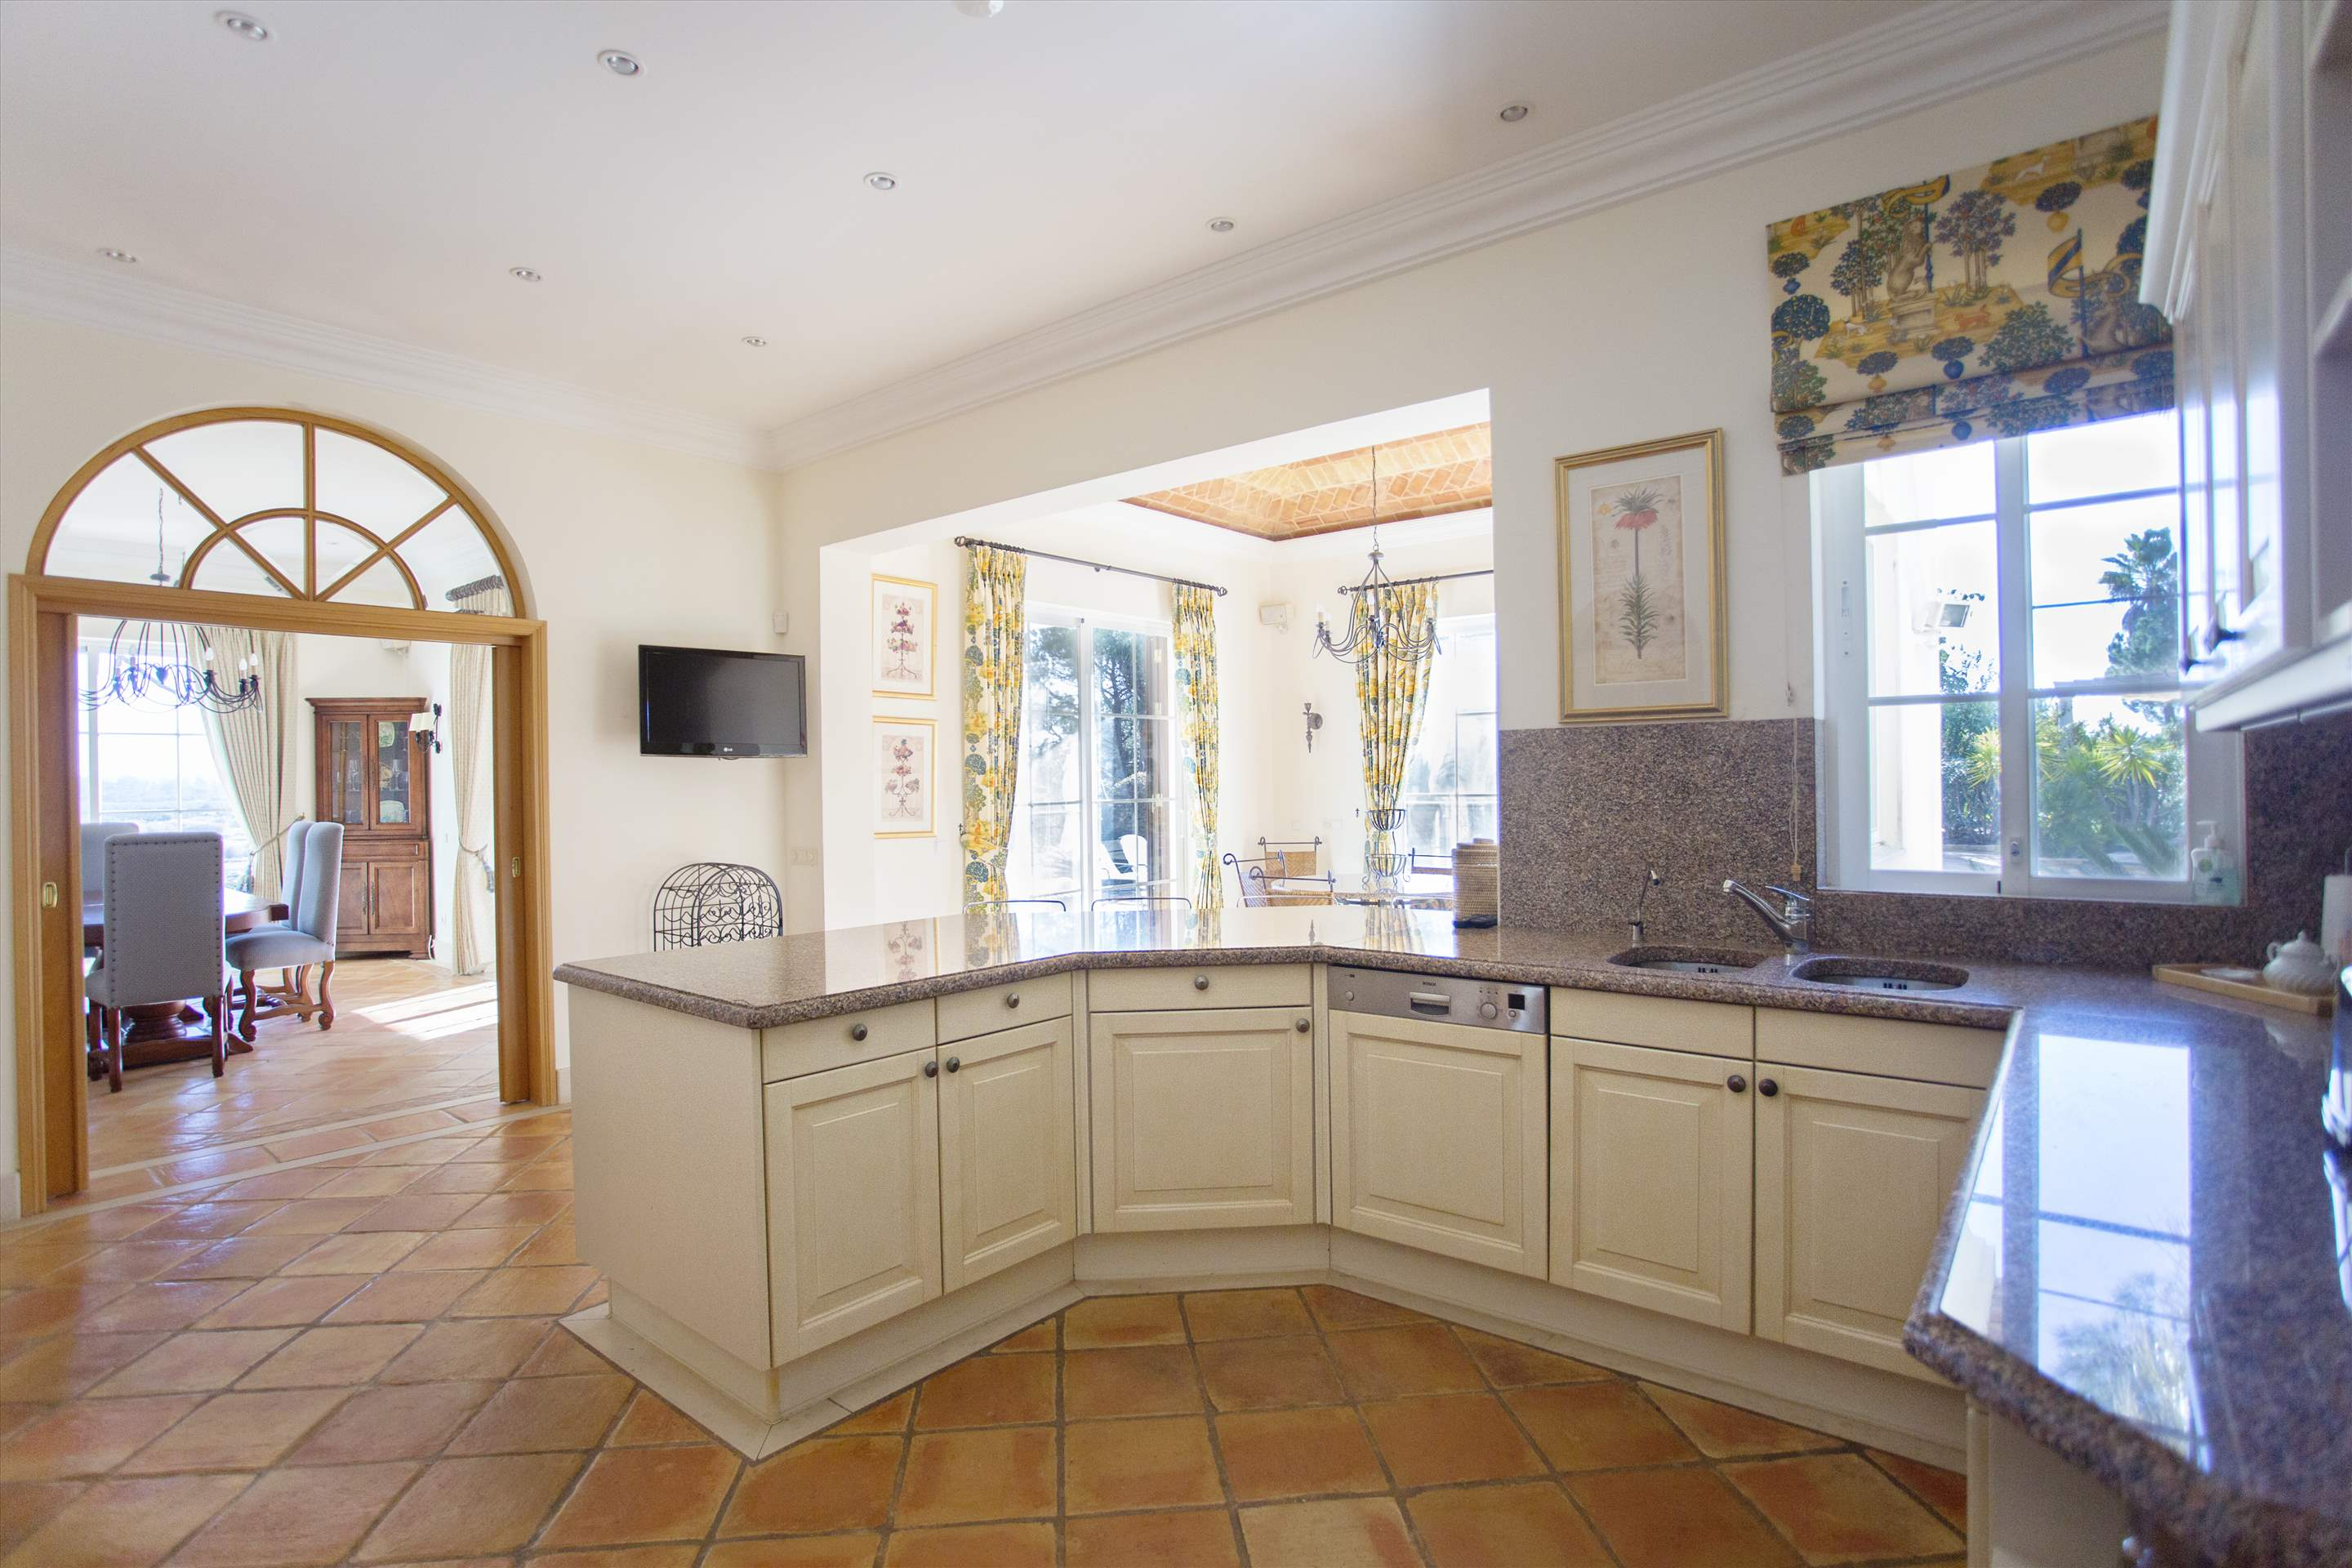 Villa Palmeiras Altas, 5 bedroom villa in Quinta do Lago, Algarve Photo #16